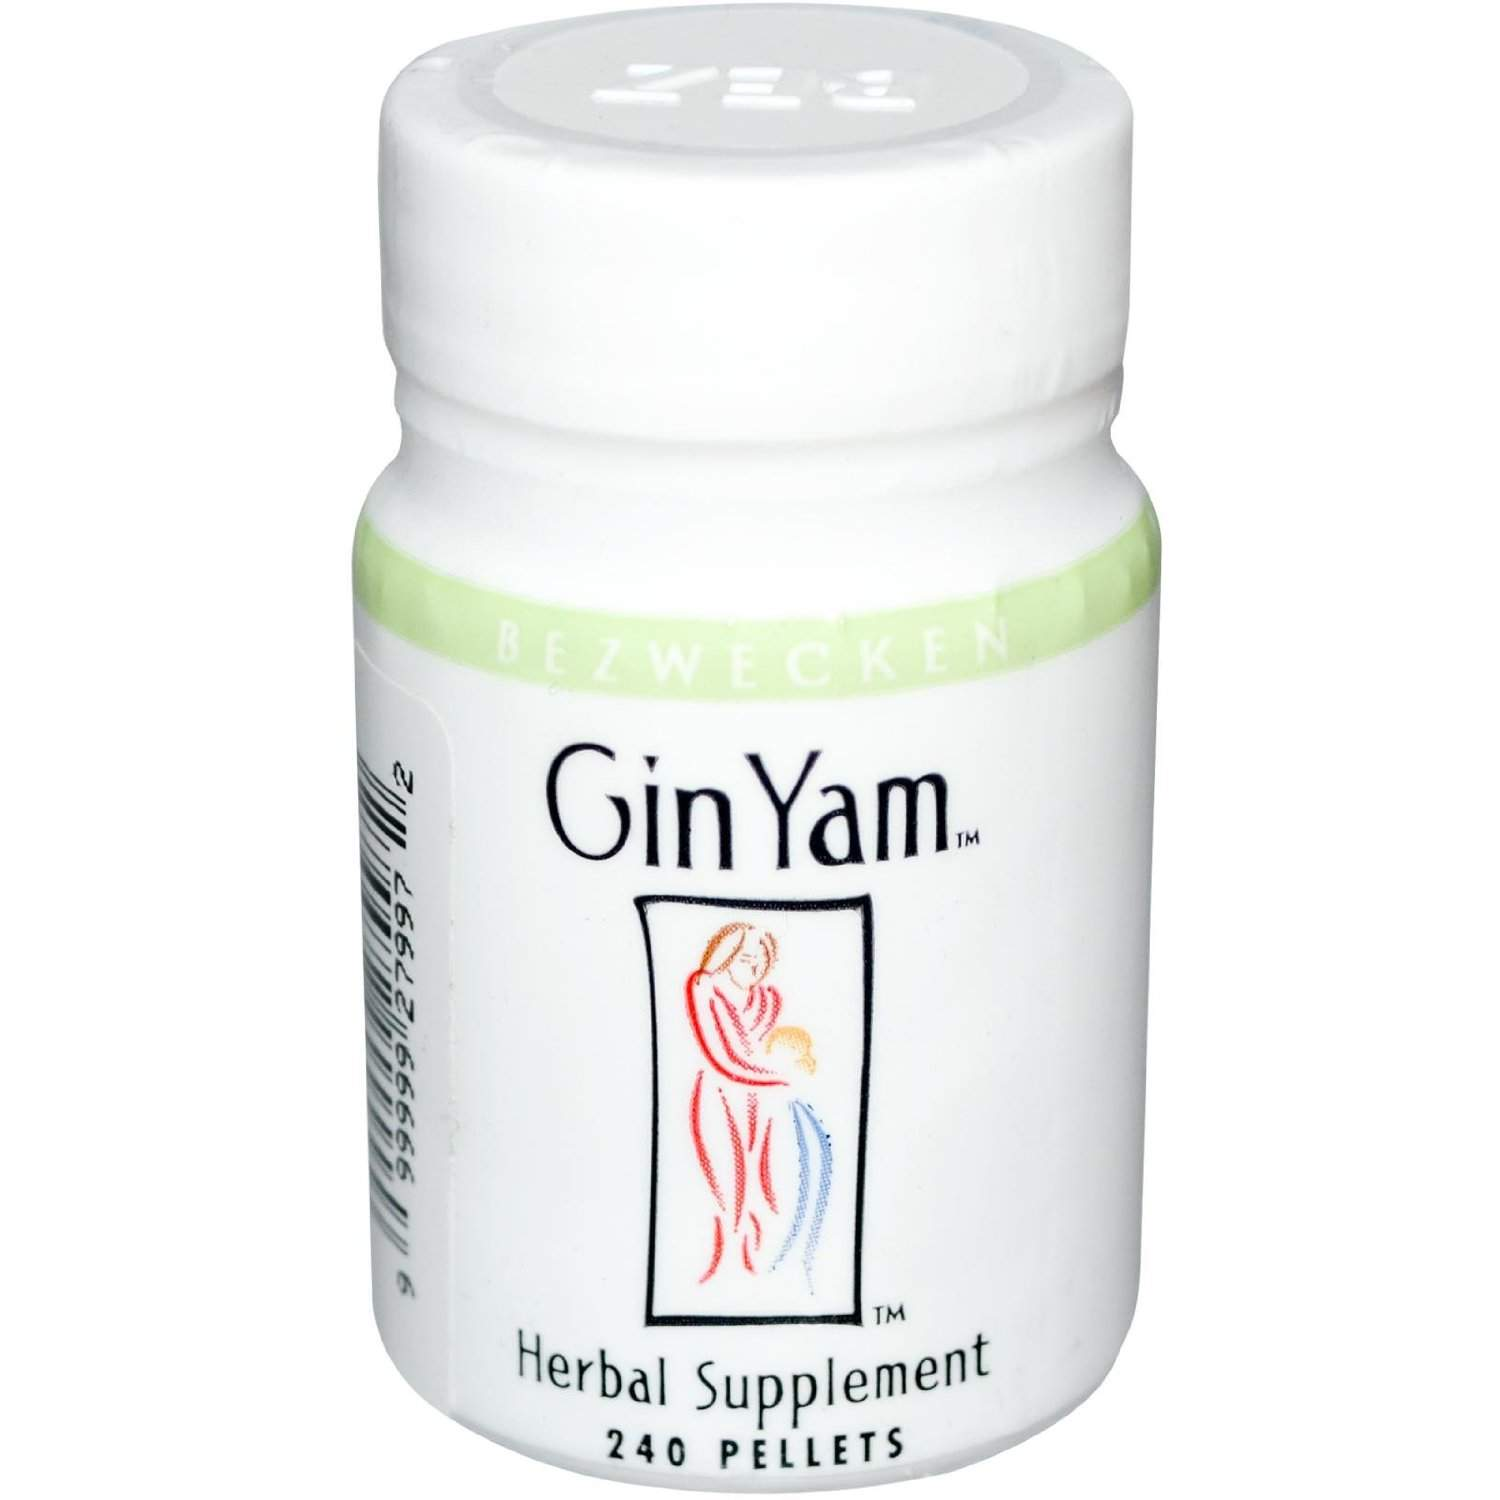 Bezwecken GinYam Menopausal Support Menopause Relief Night Sweats Hot Flashes Hormone Therapy Natural Medicine Center Lakeland Central Florida